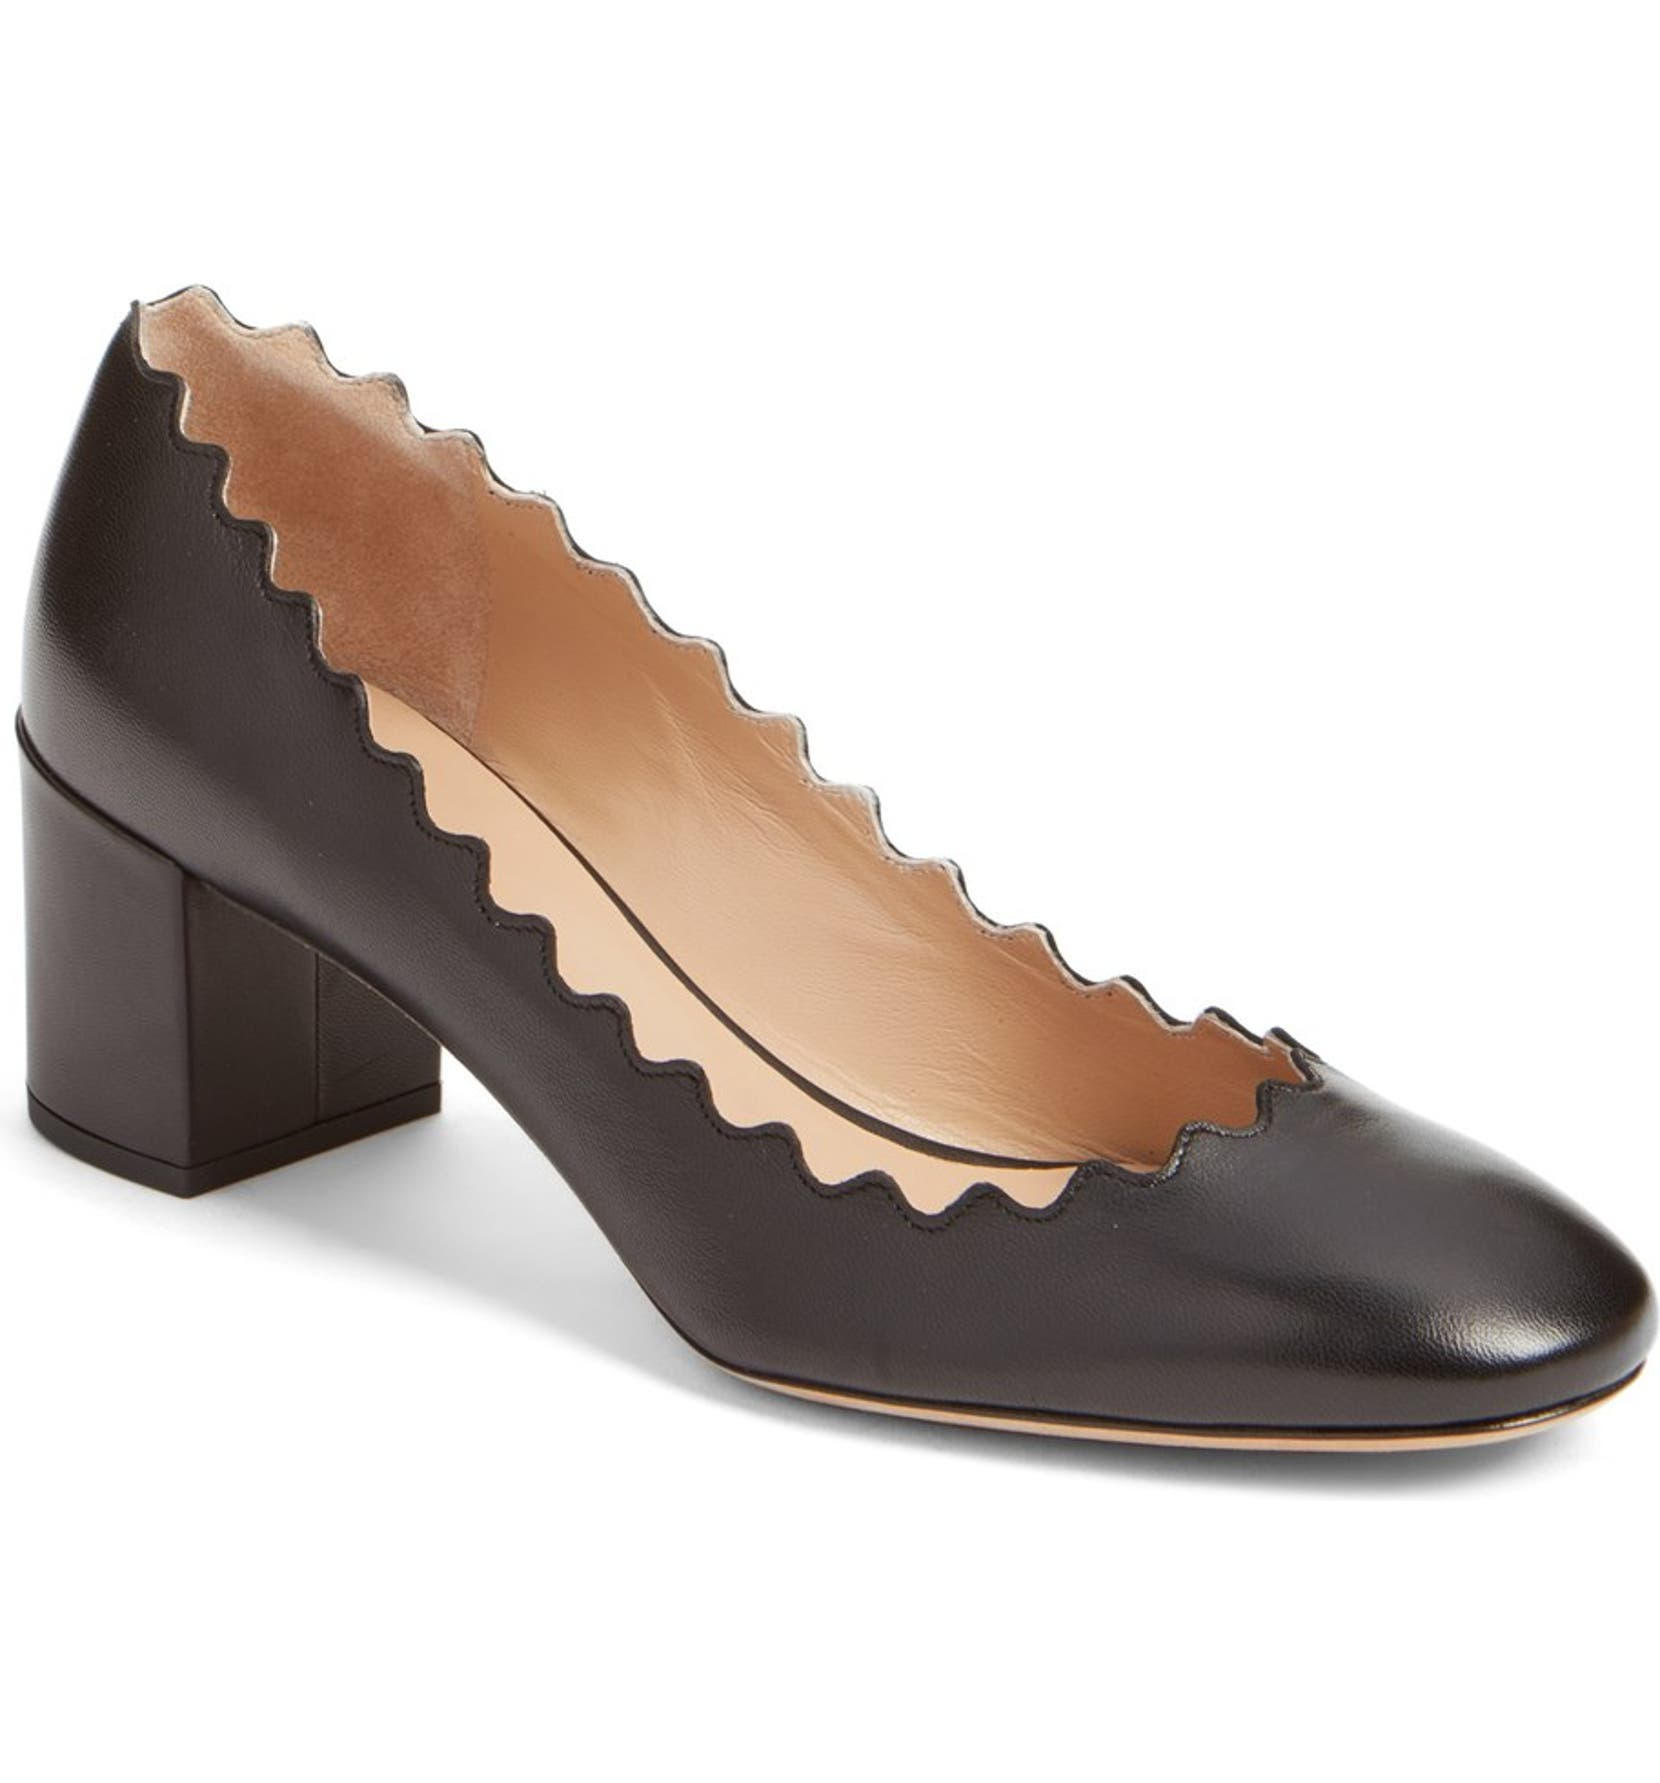 e09c70a3bda Chloé Lauren Scalloped Pump (Women)